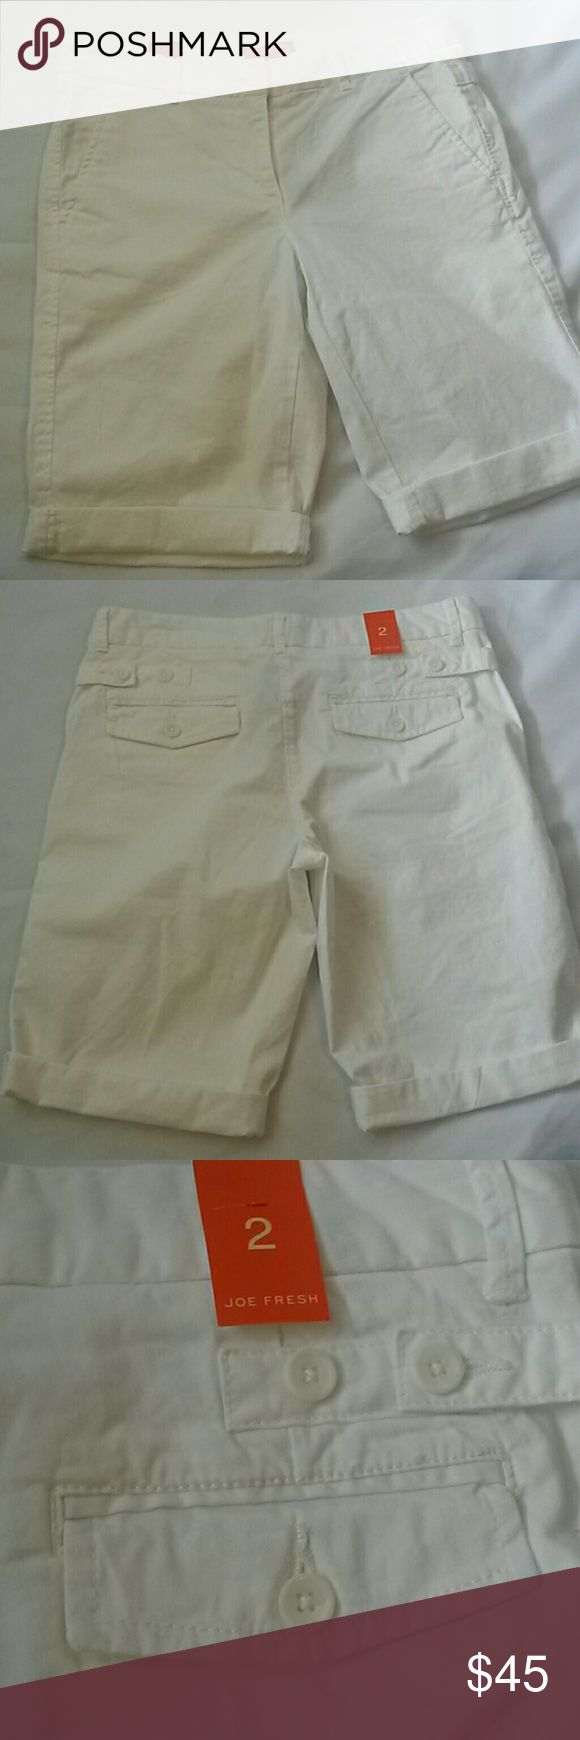 Joe Fresh cropped shorts size 2 NWT Joe Fresh cropped shorts size 2 NWT Inseam- 10 inches Waist- 16 inches Rise- 9 inches It looks like there is a mark on the butt, it might wash out. Joe Fresh Shorts